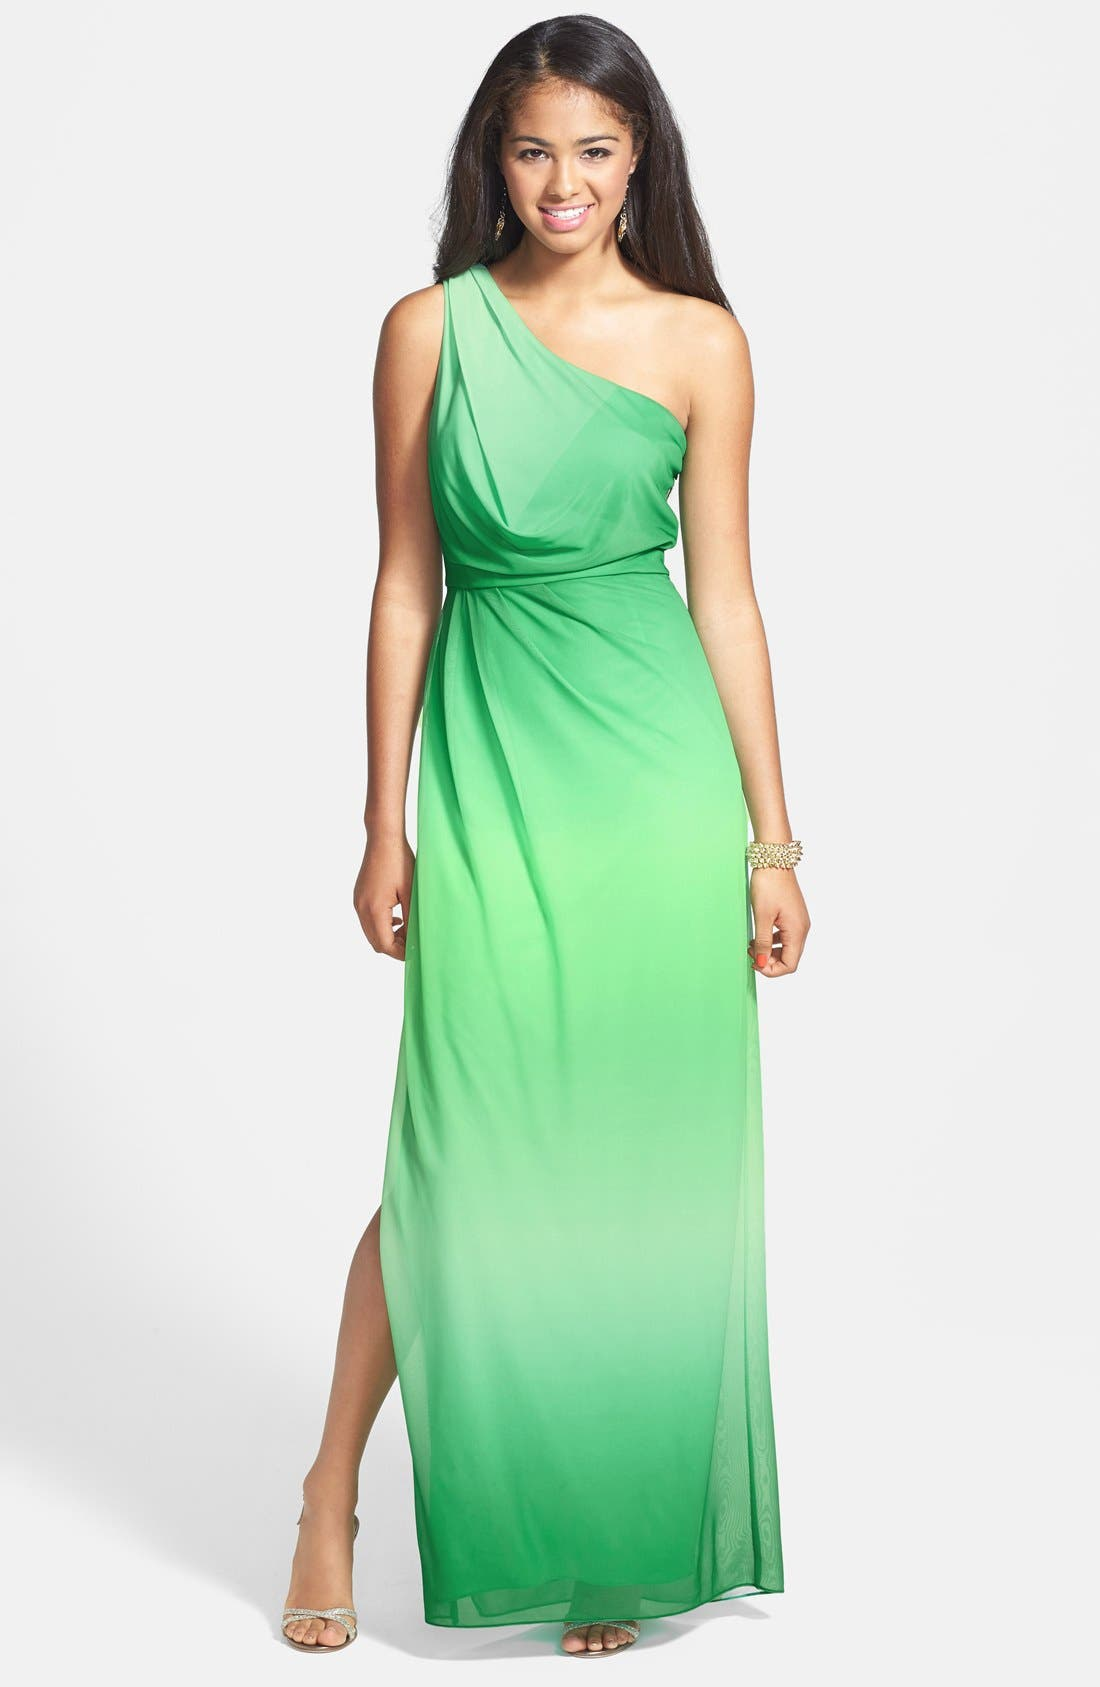 Main Image - Hailey by Adrianna Papell One-Shoulder Ombré Blouson Jersey Gown